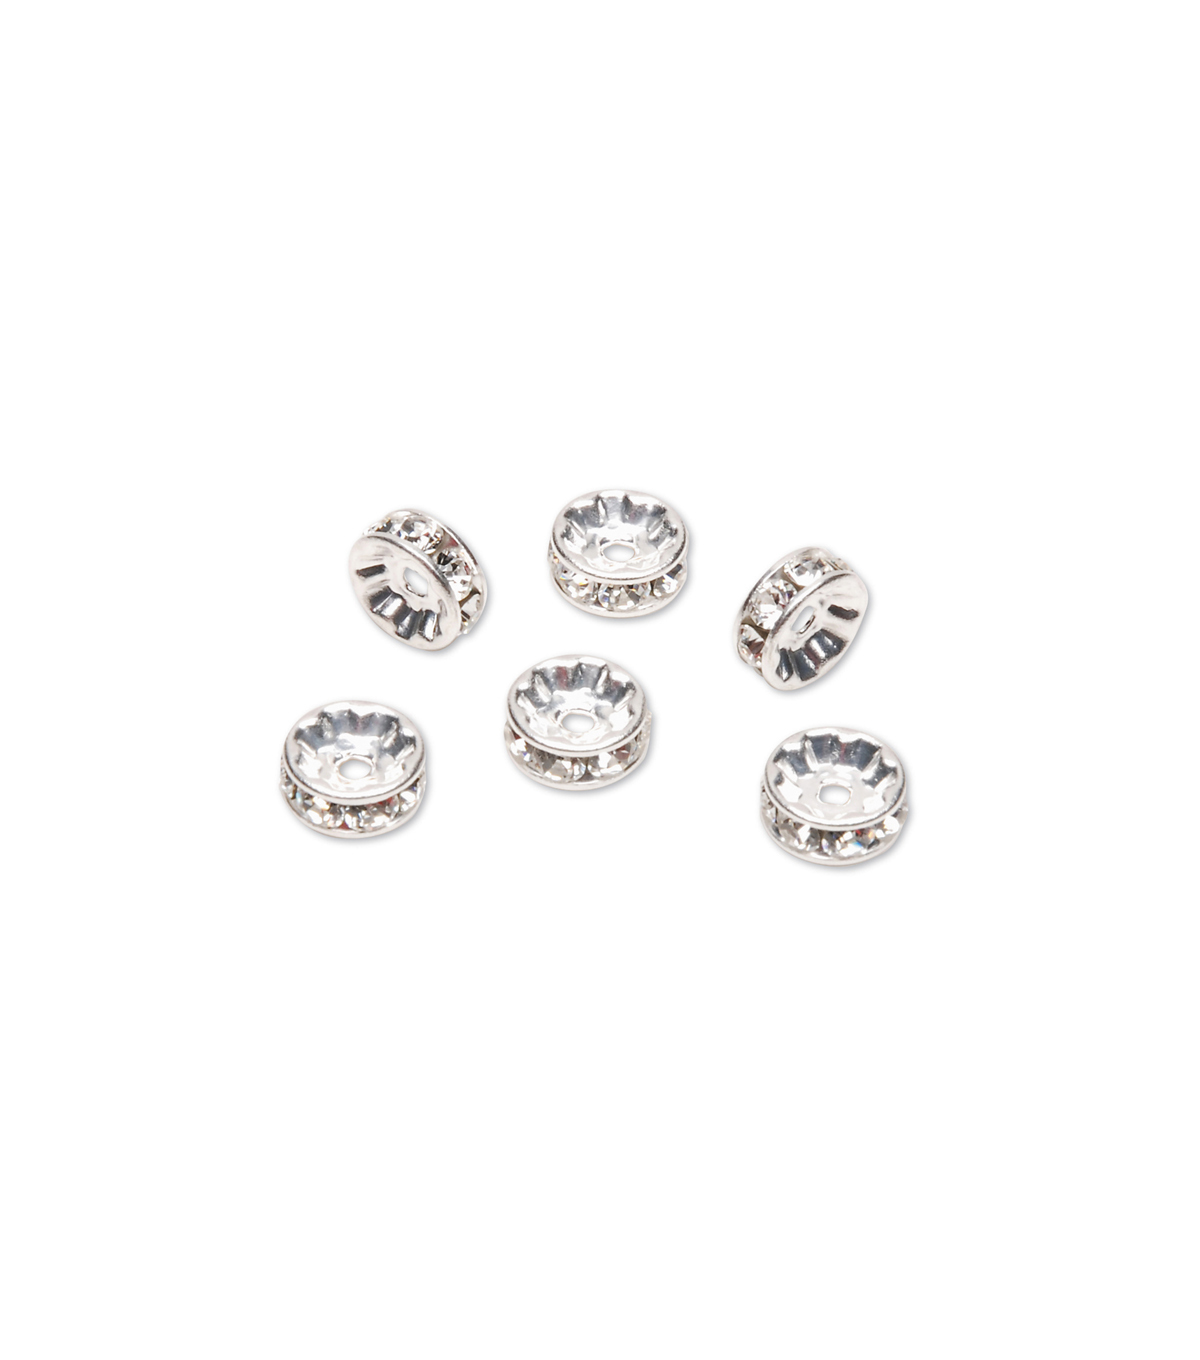 Swarovski™ Rondelle Spacers w/Crystal, Sterling Silver Plated, 8mm, 6pc/pkg